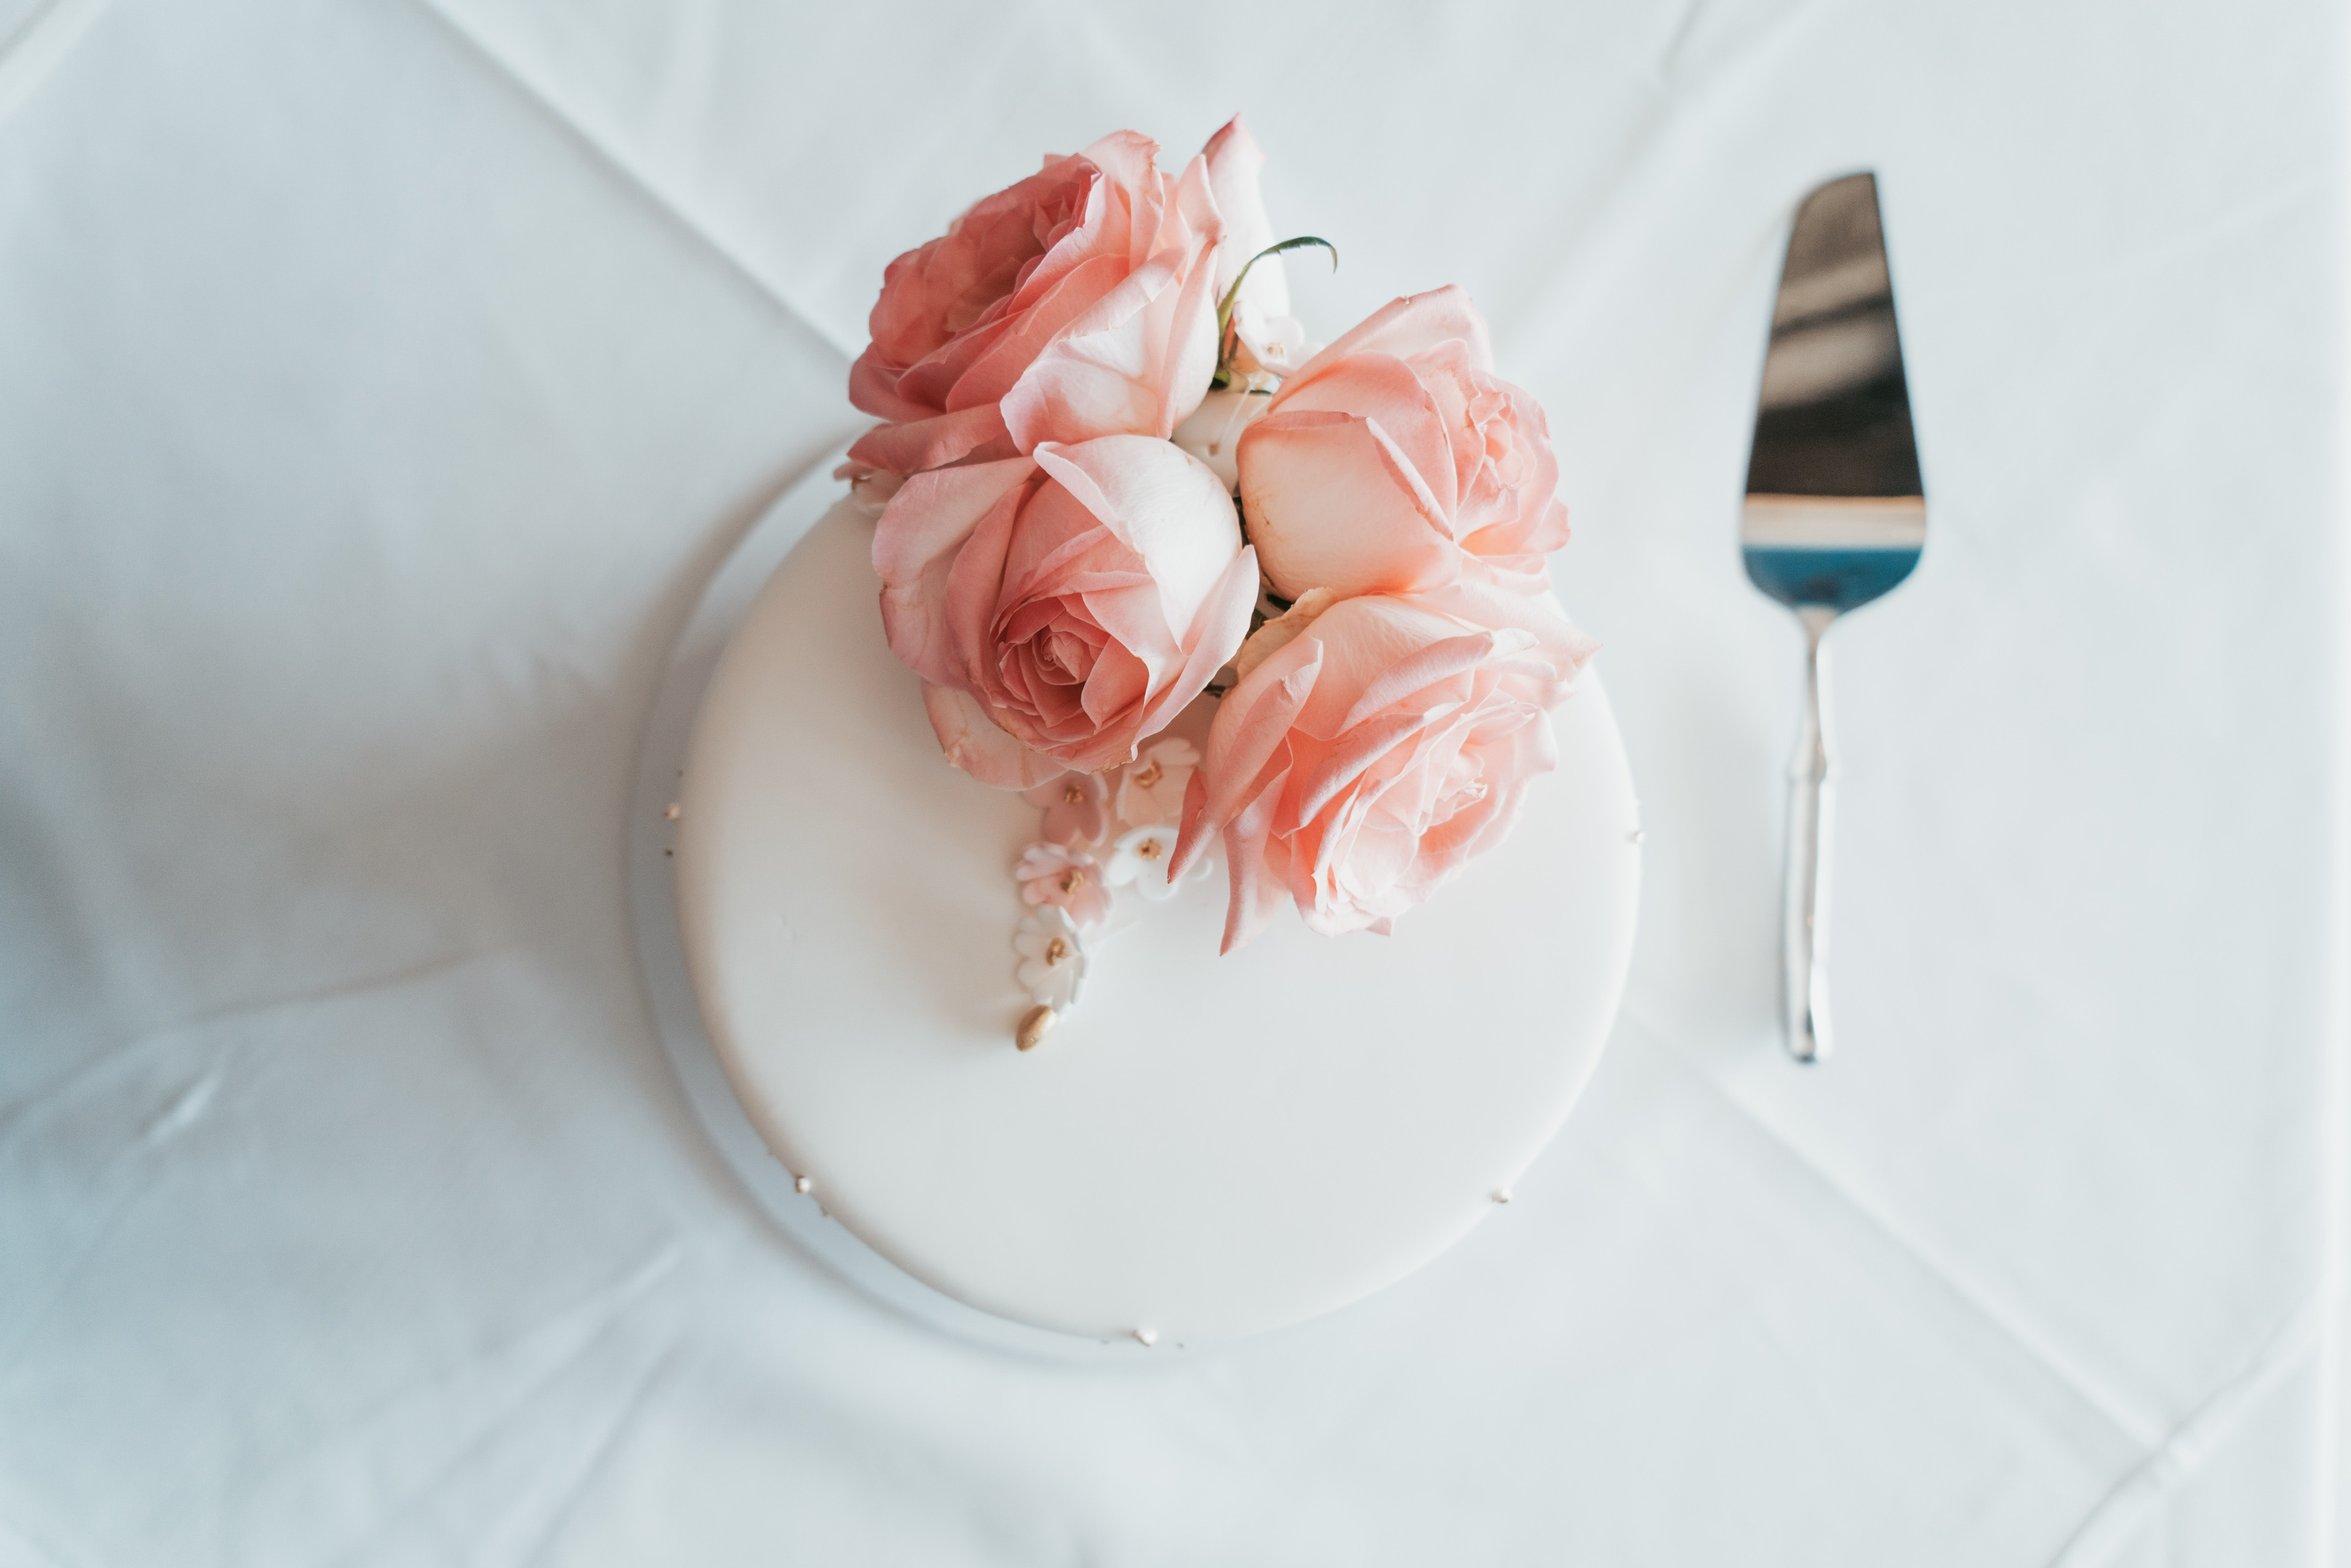 round fondant cake with white icings and roses toppings beside cake server on white textile